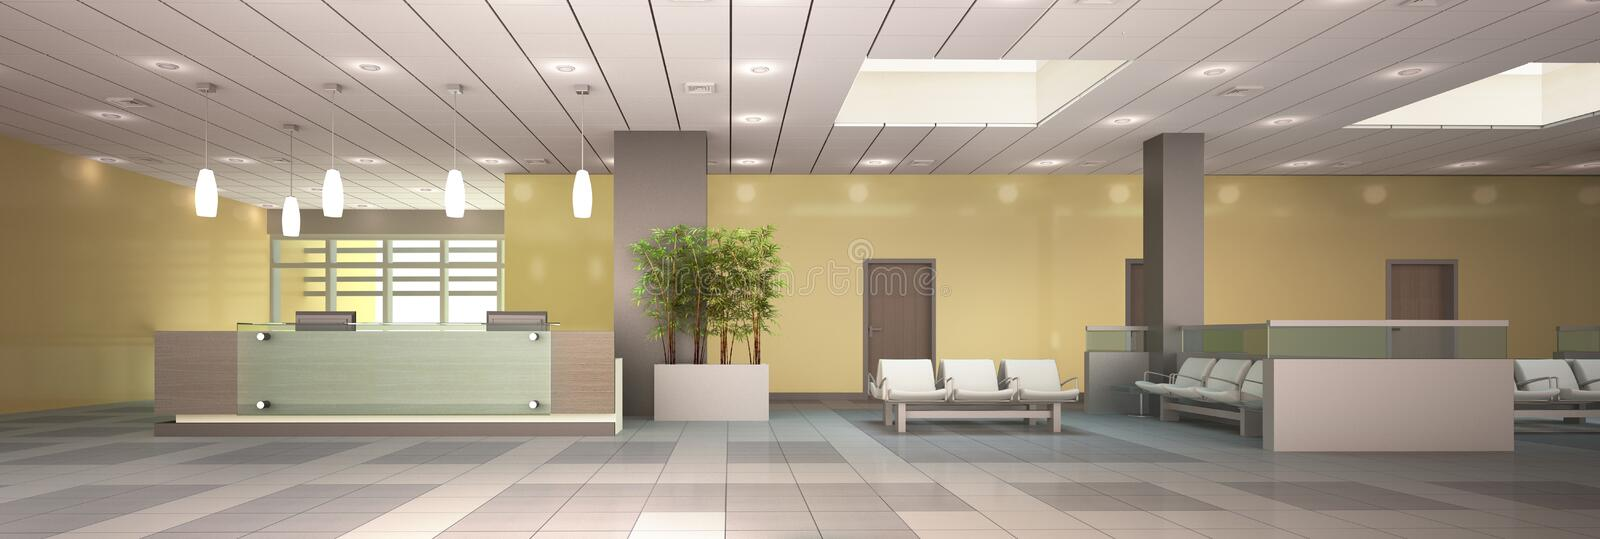 Reception area. royalty free illustration